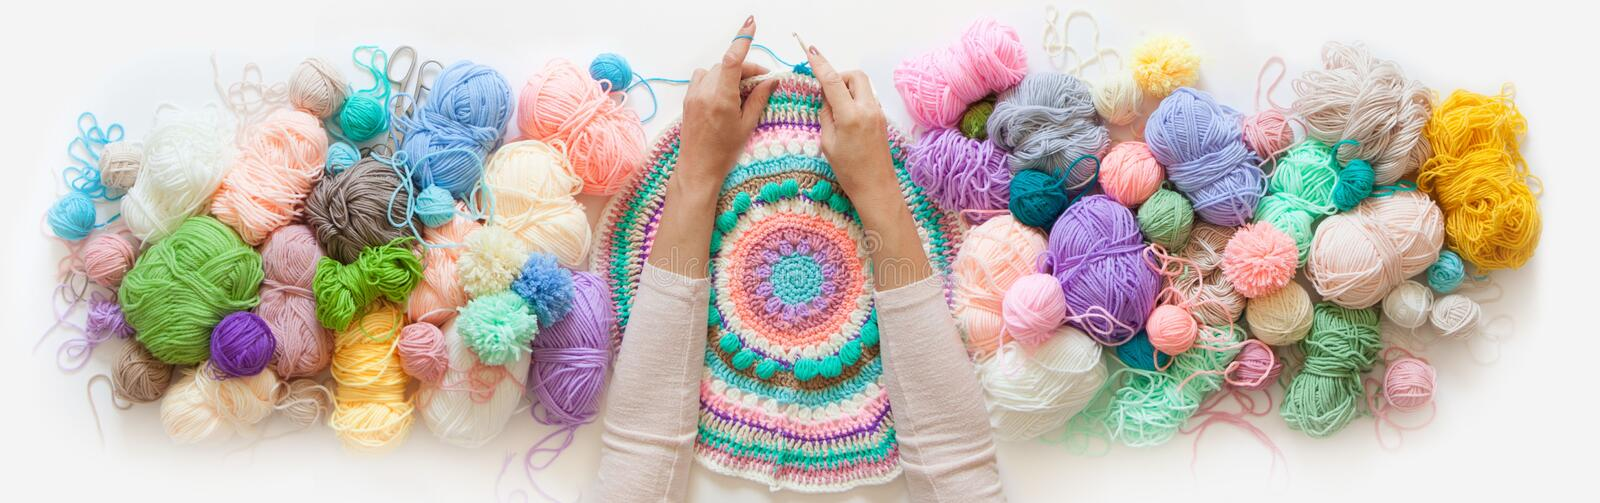 Female hands knitting round mandala with color wool, on a white background, top view. Colored balls of yarn. View from above. Rainbow colors. All colors. Yarn stock illustration